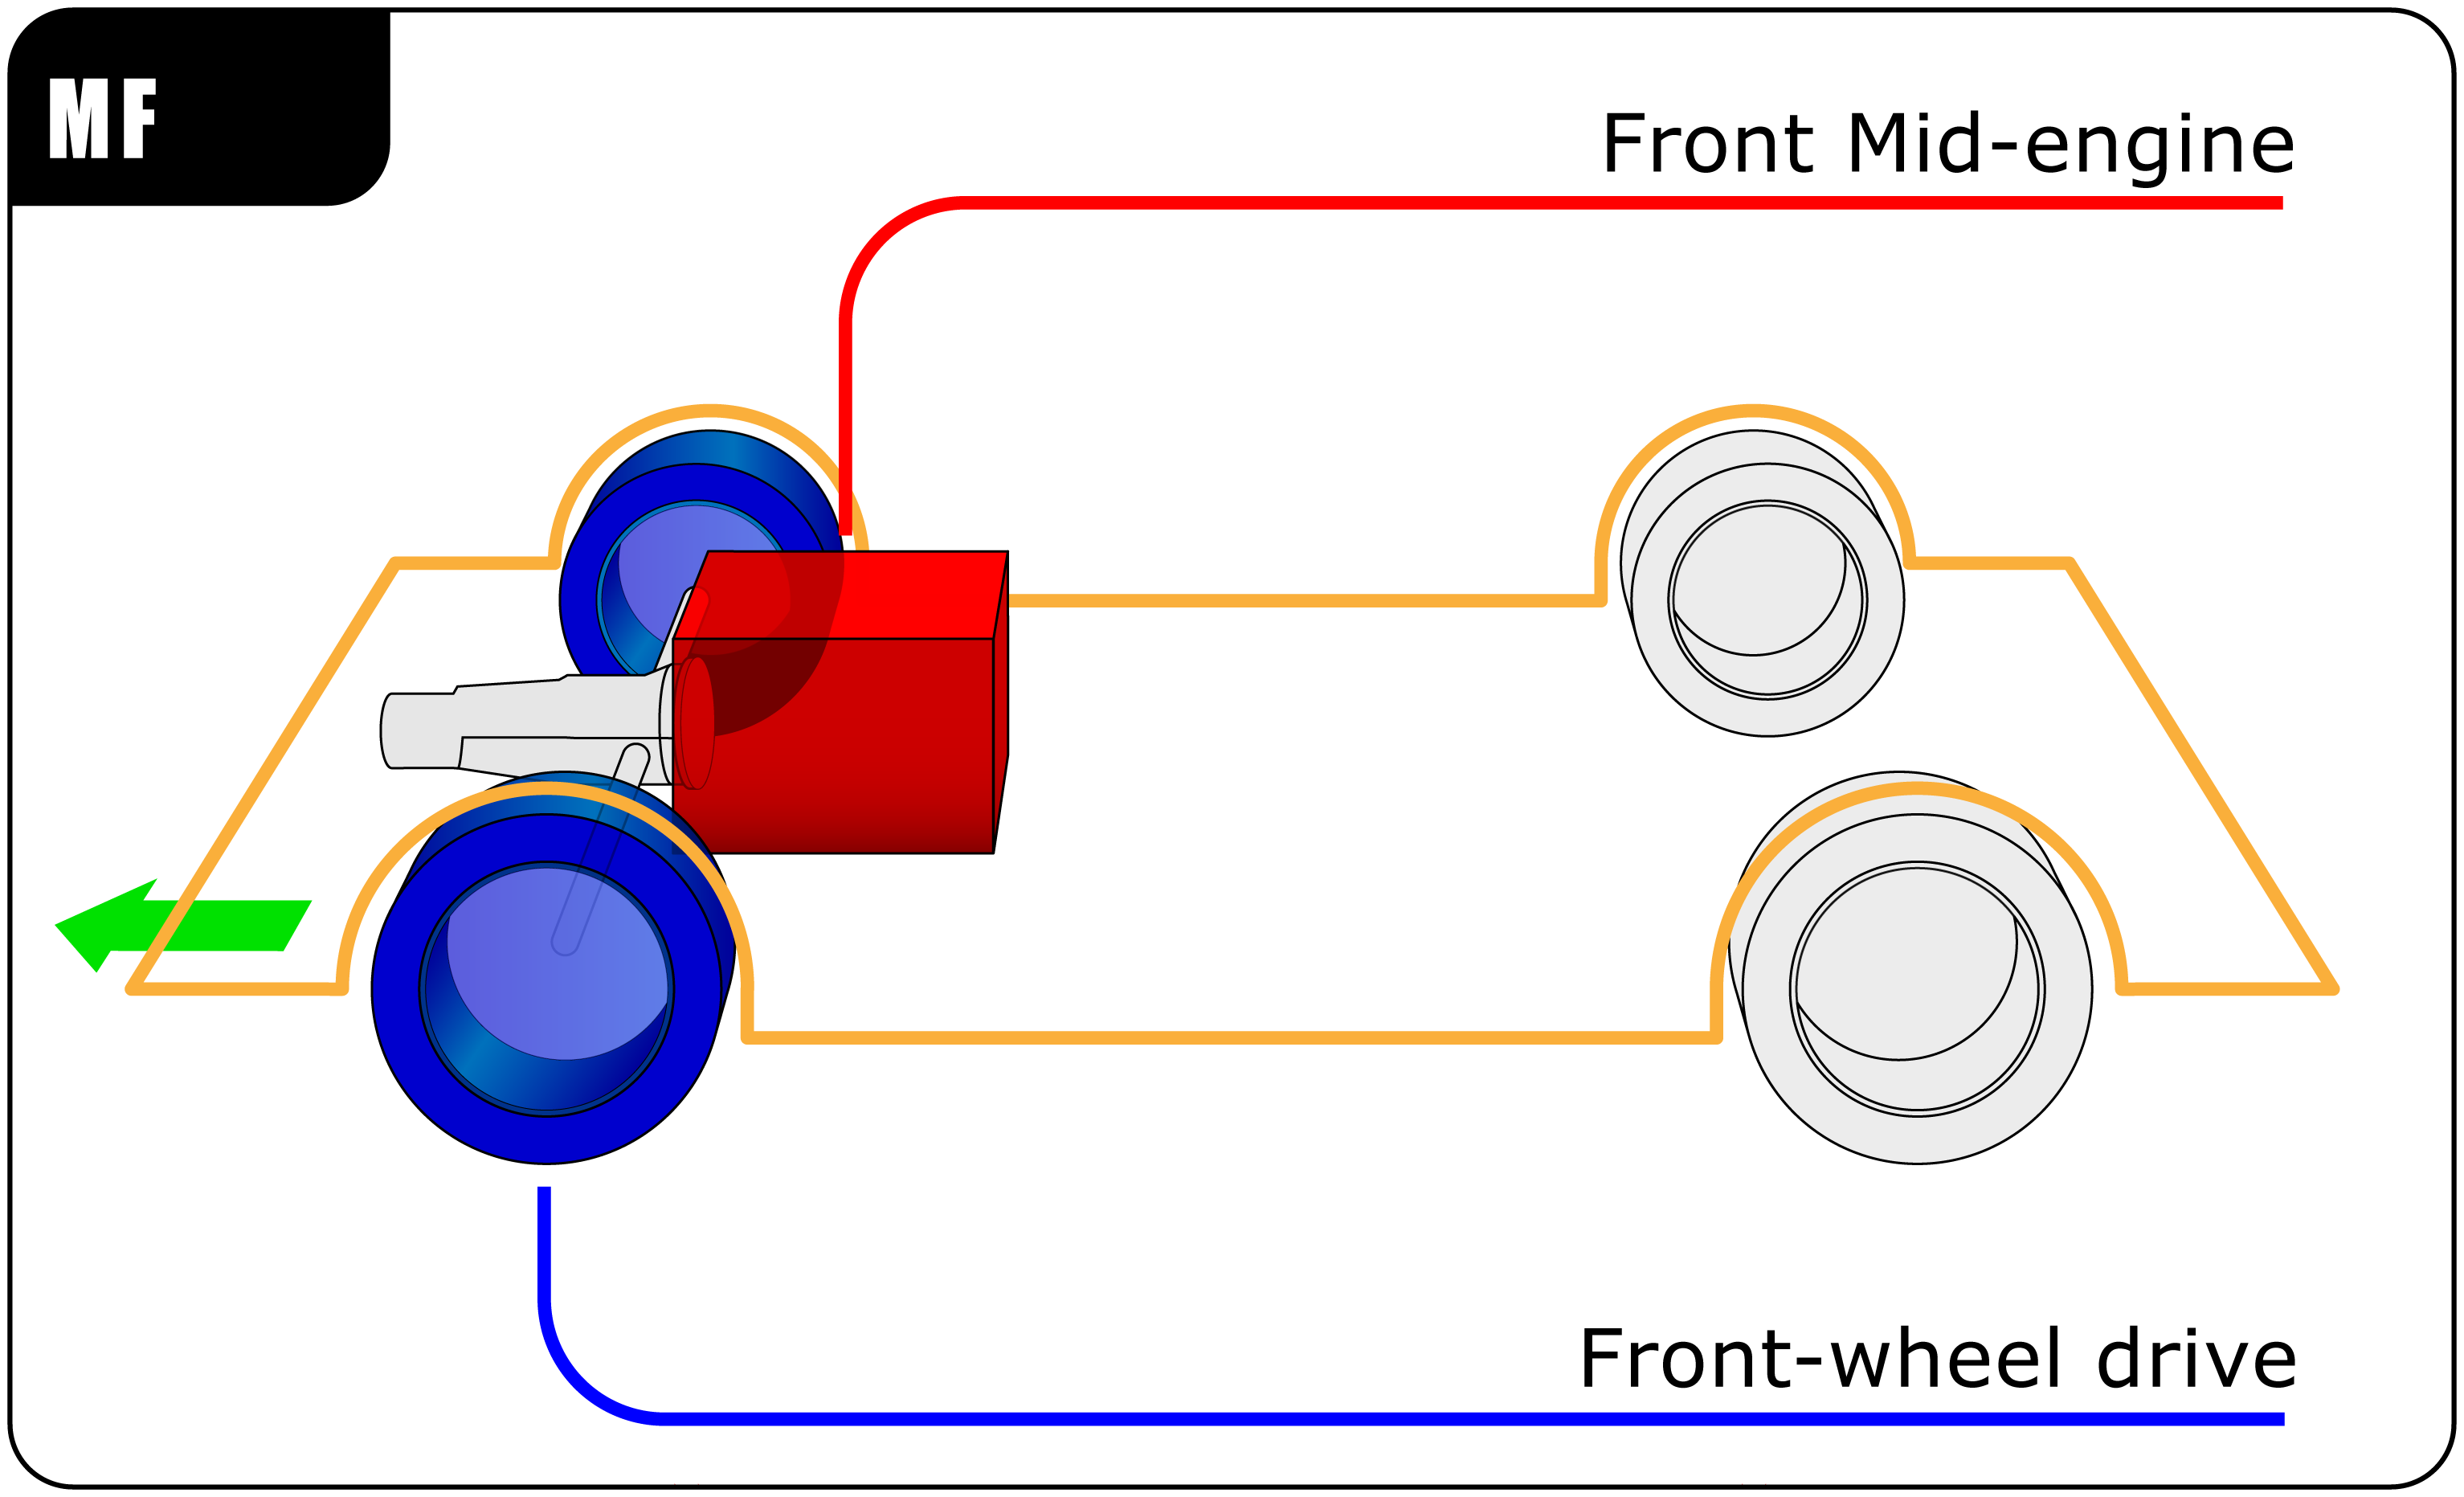 Front mid-engine position / Front-wheel drive